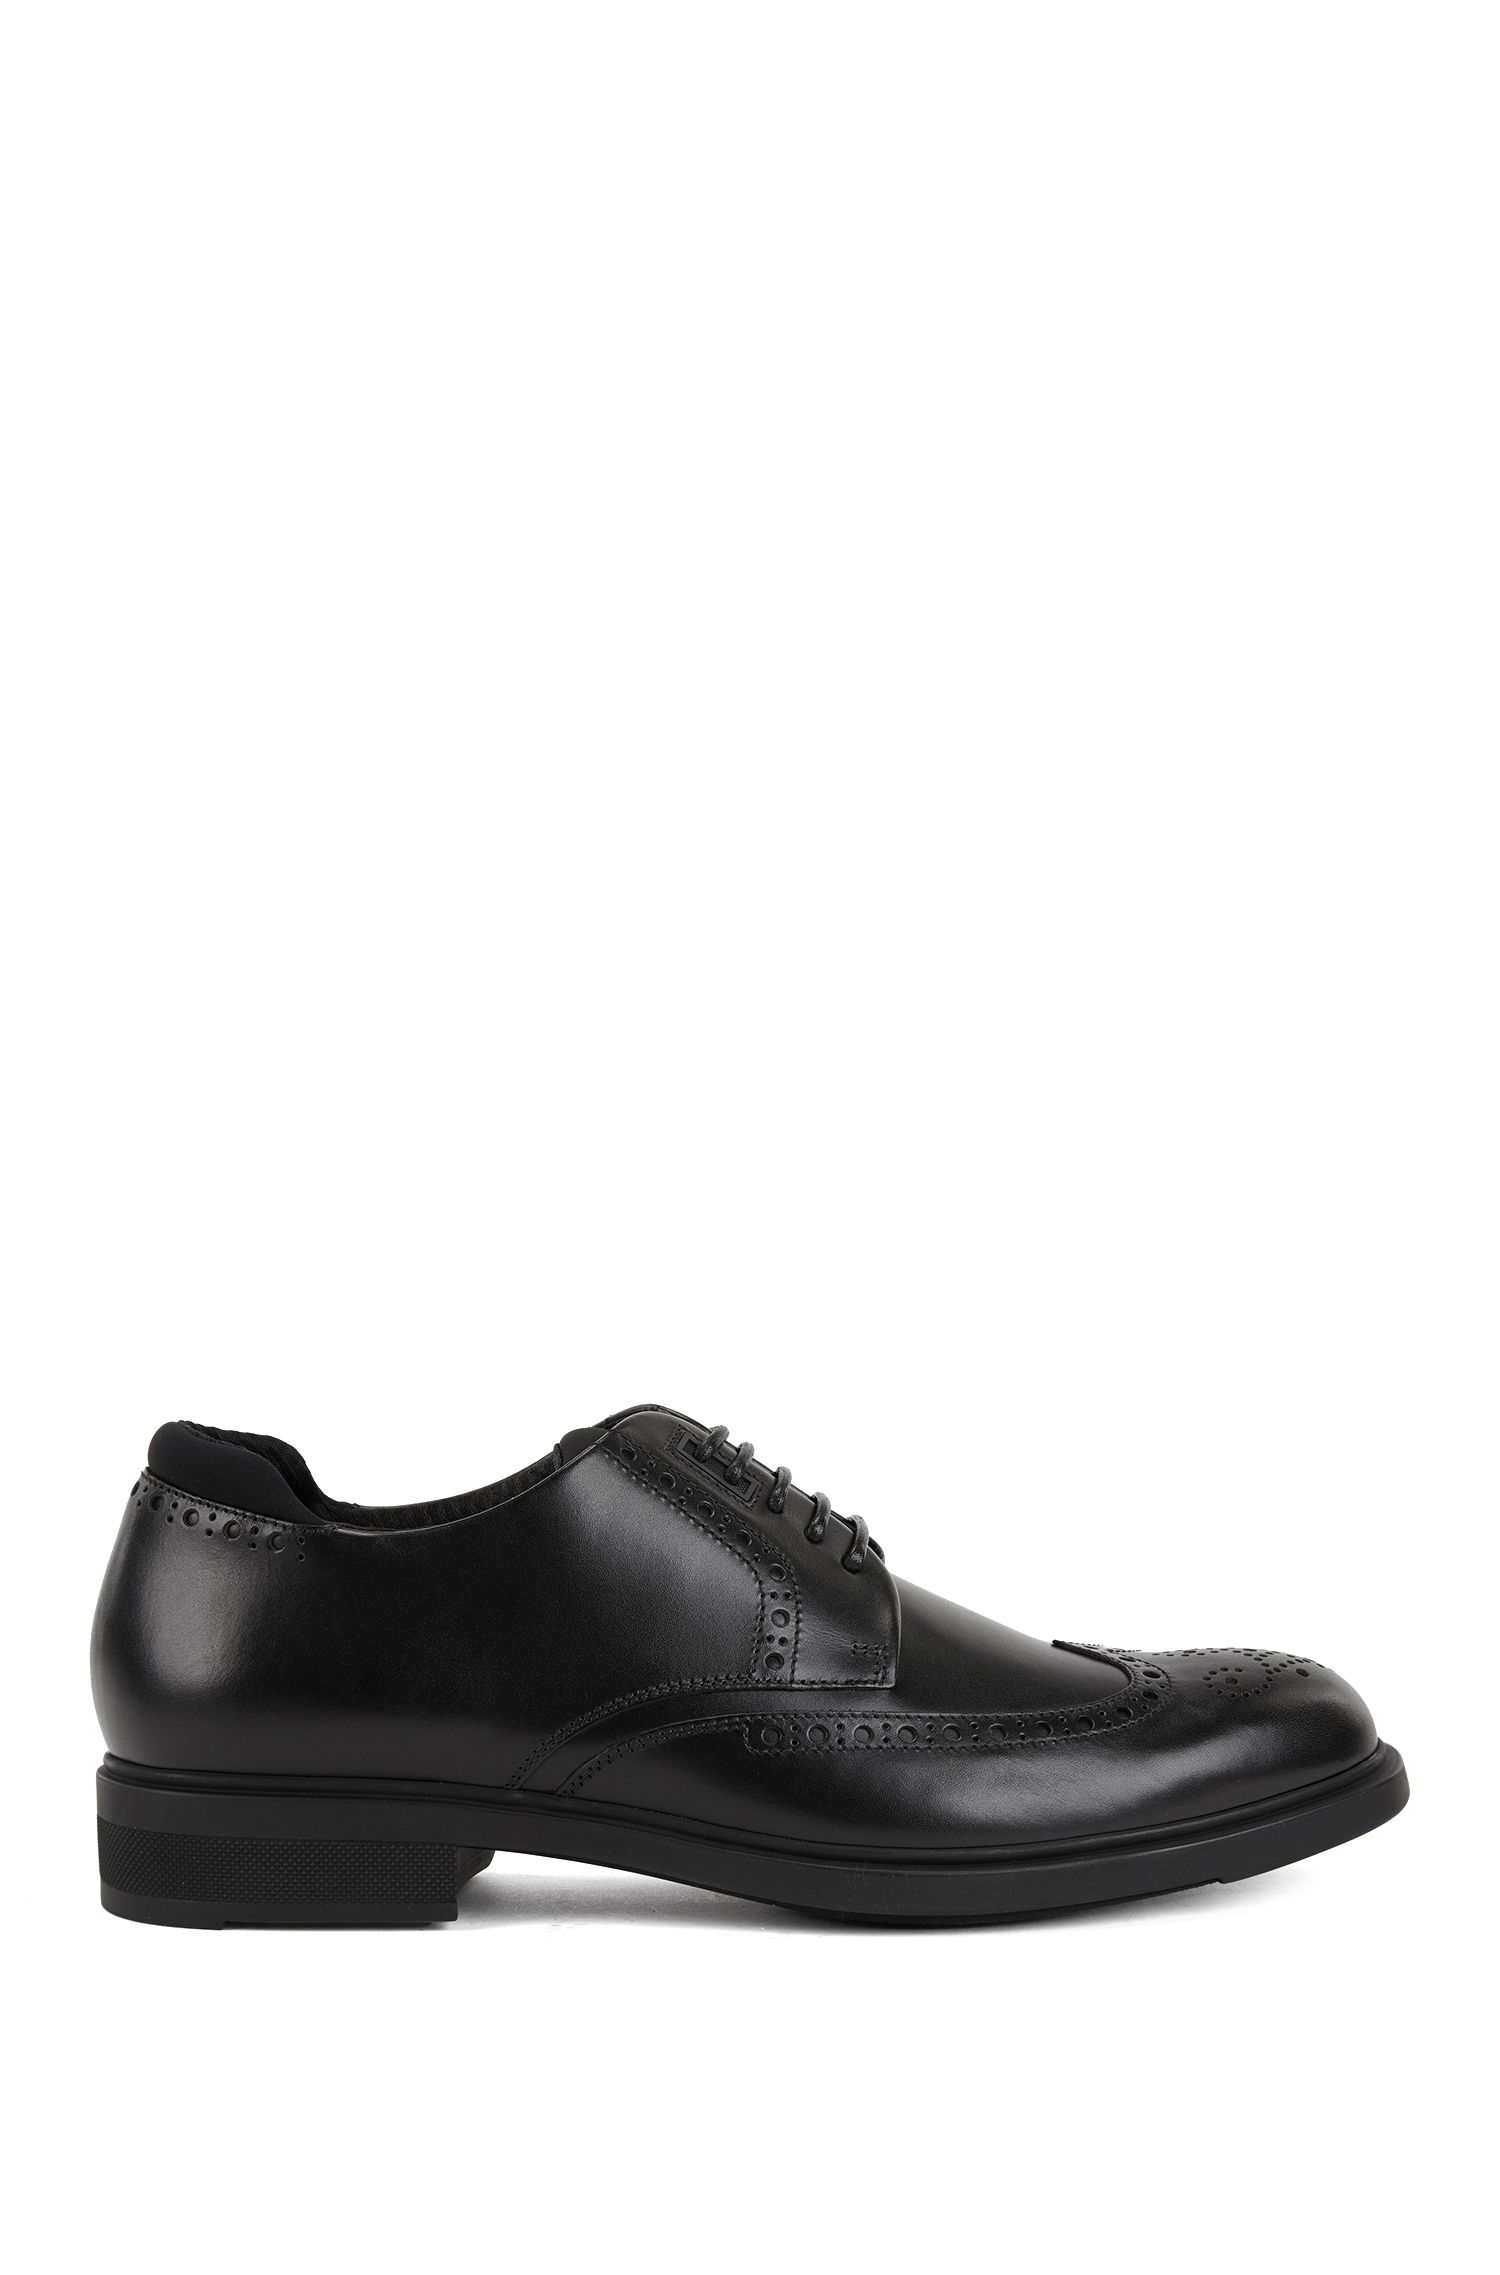 Hugo Boss - Calf-leather Derby brogue shoes with Outlast® lining - 1